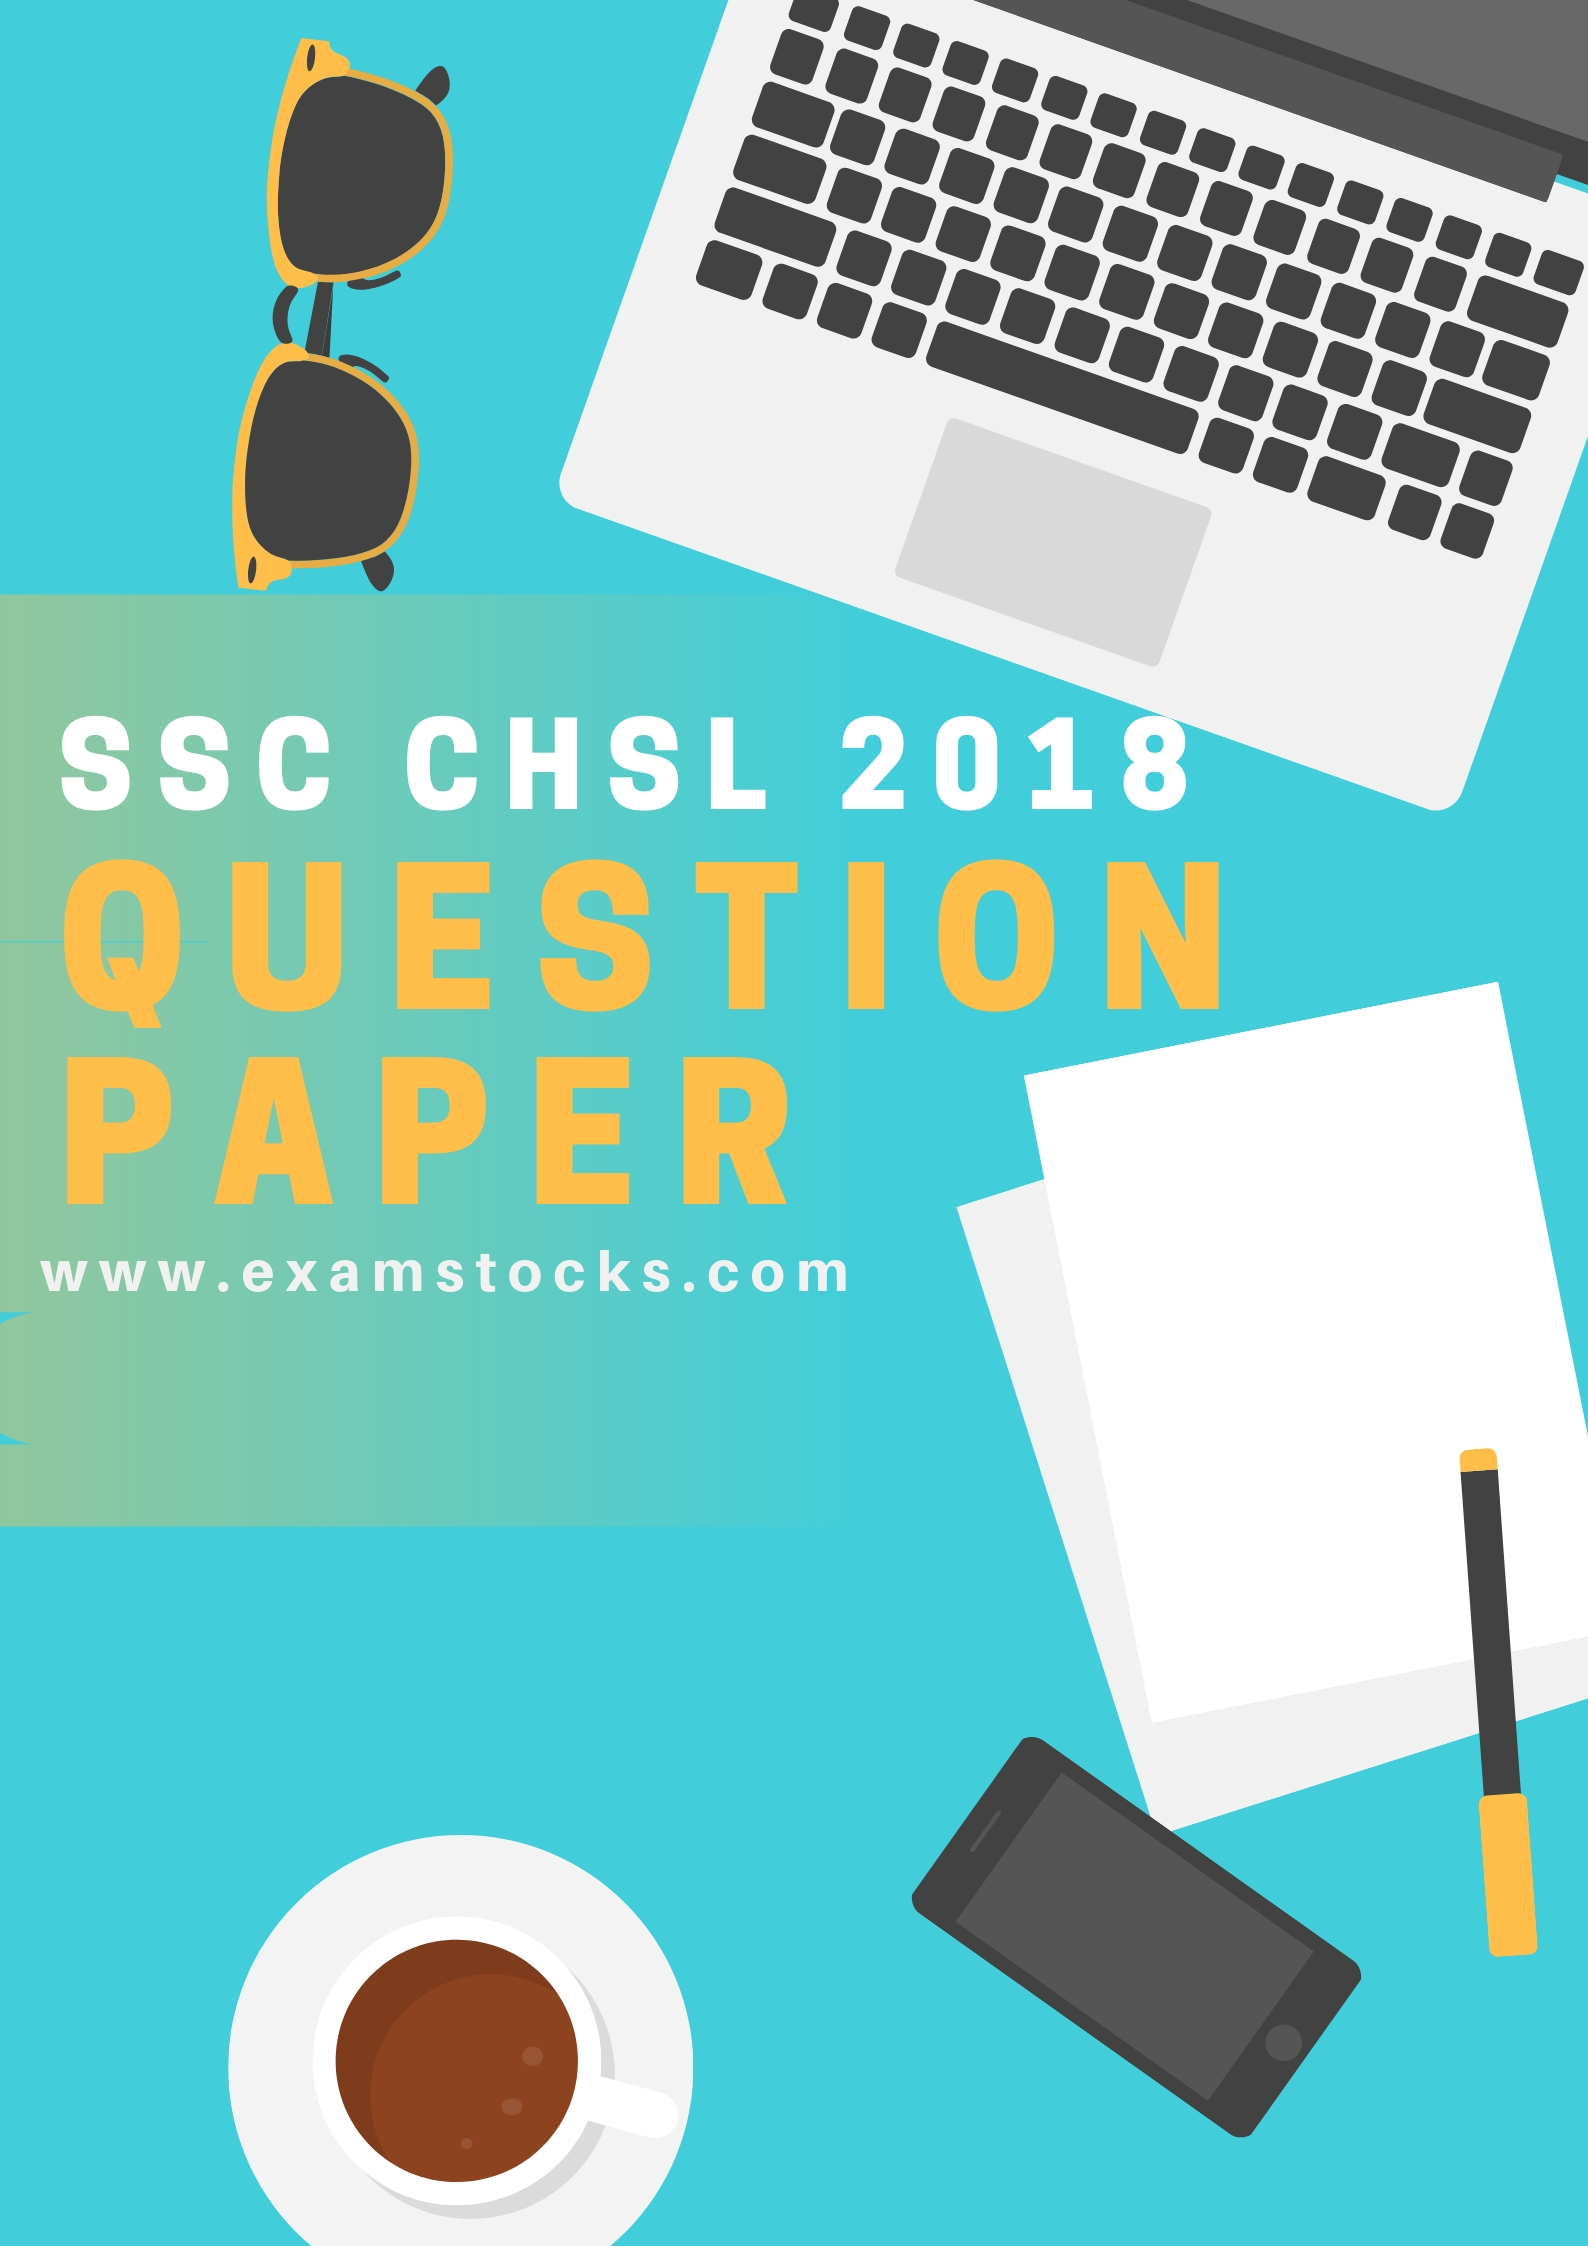 SSC CHSL Question Paper 2018 PDF